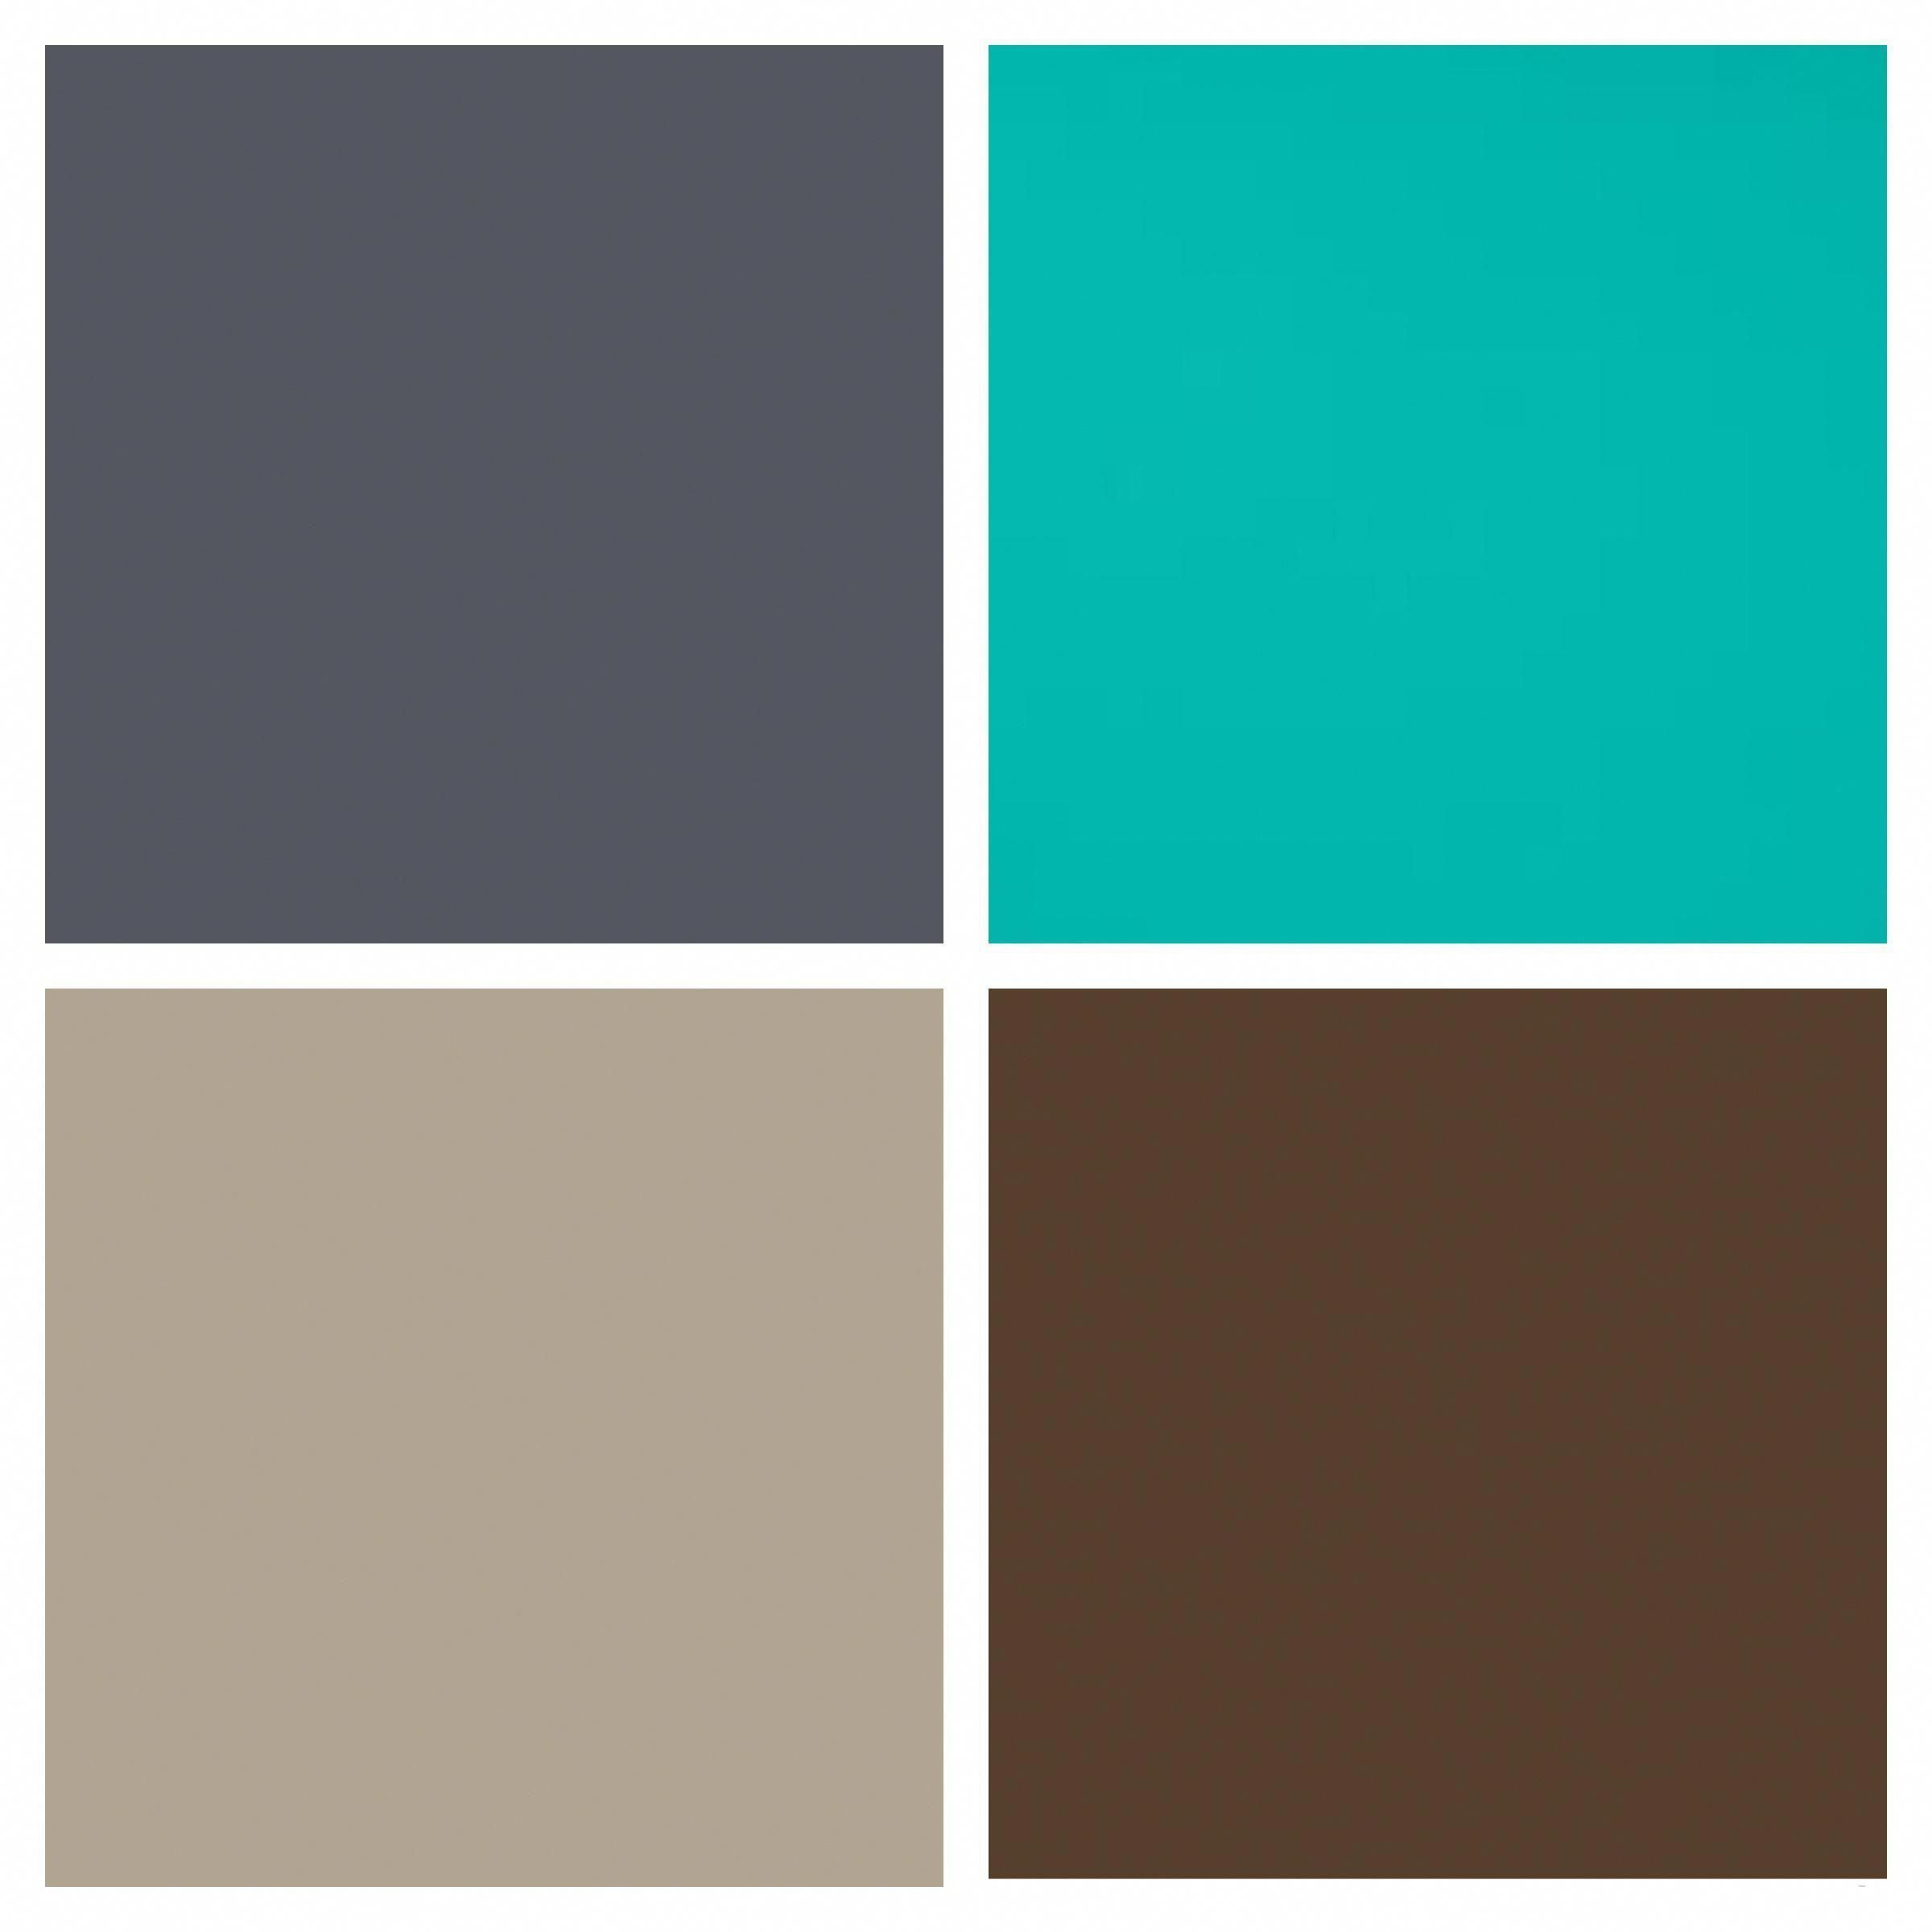 Bedroom color palette - slate gray / storm grey, turquoise / ocean blue, beige / taupe & rich brown / chocolate. Neutral palette with pops of color, both masculine & feminine. #GreybedroomWithPopOfColor #brownandbluelivingroom #graybedroomwithpopofcolor Bedroom color palette - slate gray / storm grey, turquoise / ocean blue, beige / taupe & rich brown / chocolate. Neutral palette with pops of color, both masculine & feminine. #GreybedroomWithPopOfColor #brownandbluelivingroom #graybedroomwithpopofcolor